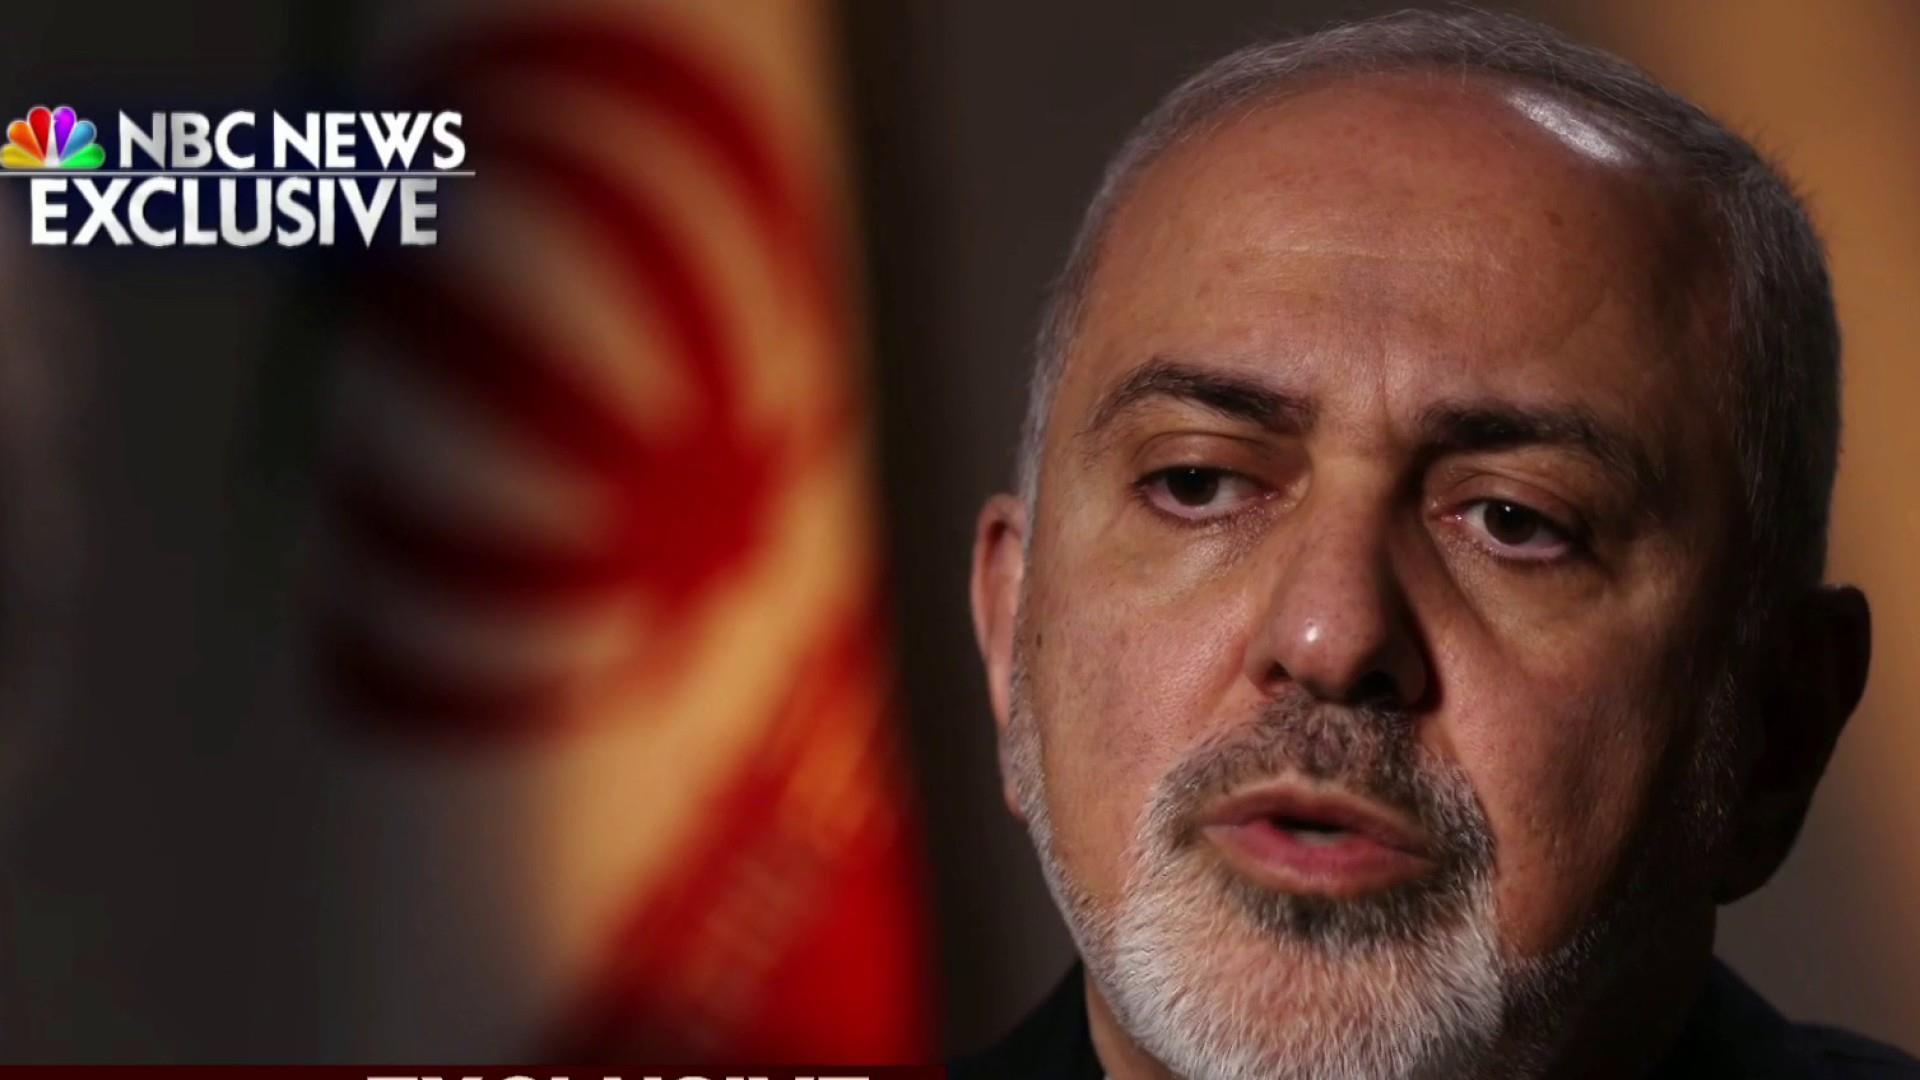 Starting war with Iran would be 'suicidal': foreign minister